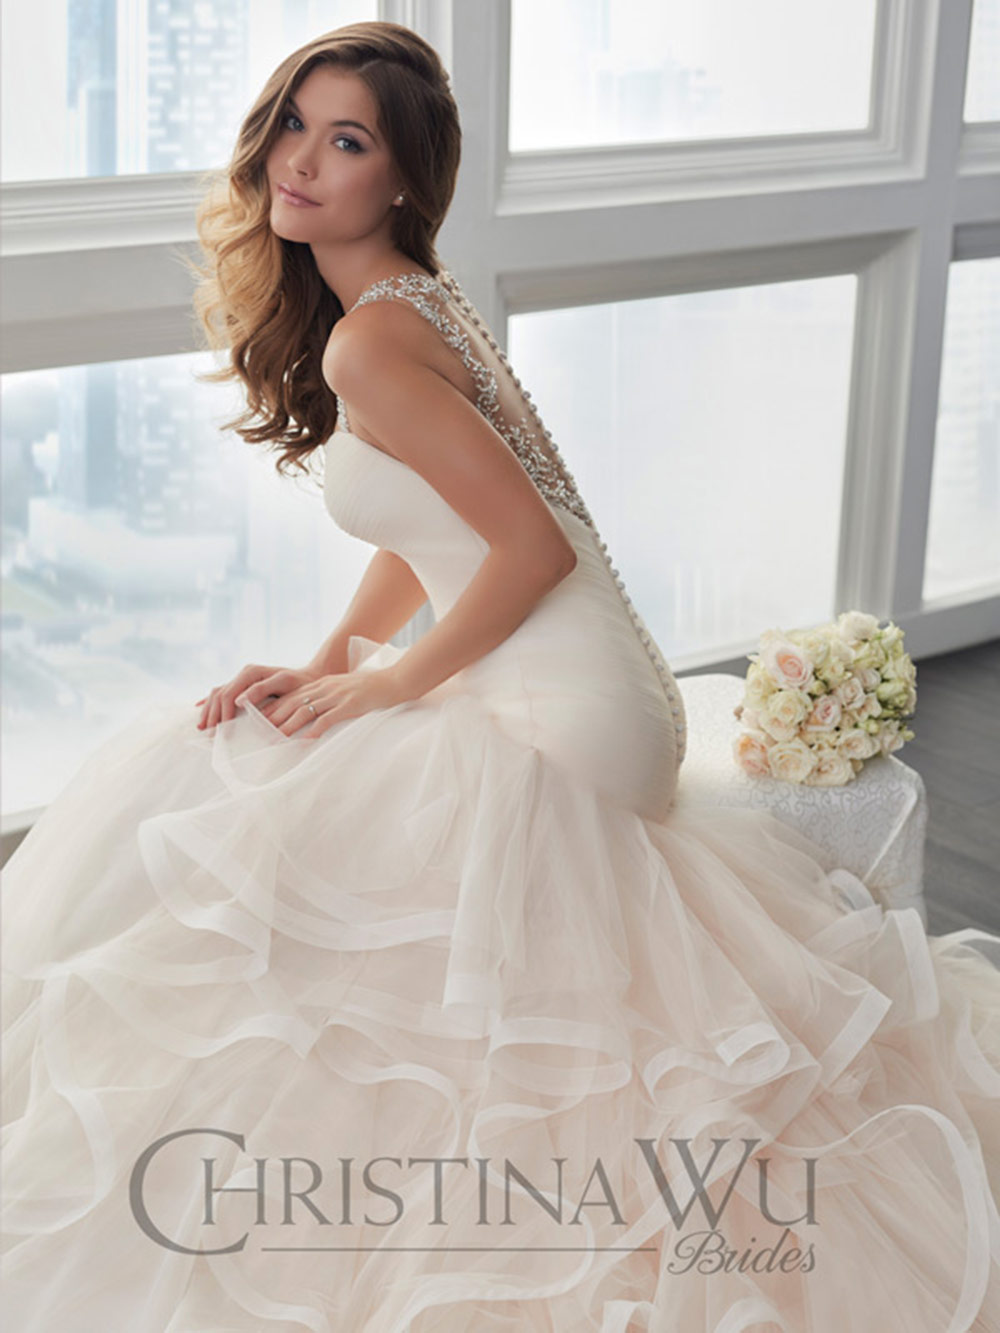 The Wedding Gallery - Bridal Boutique in Hertfordshire